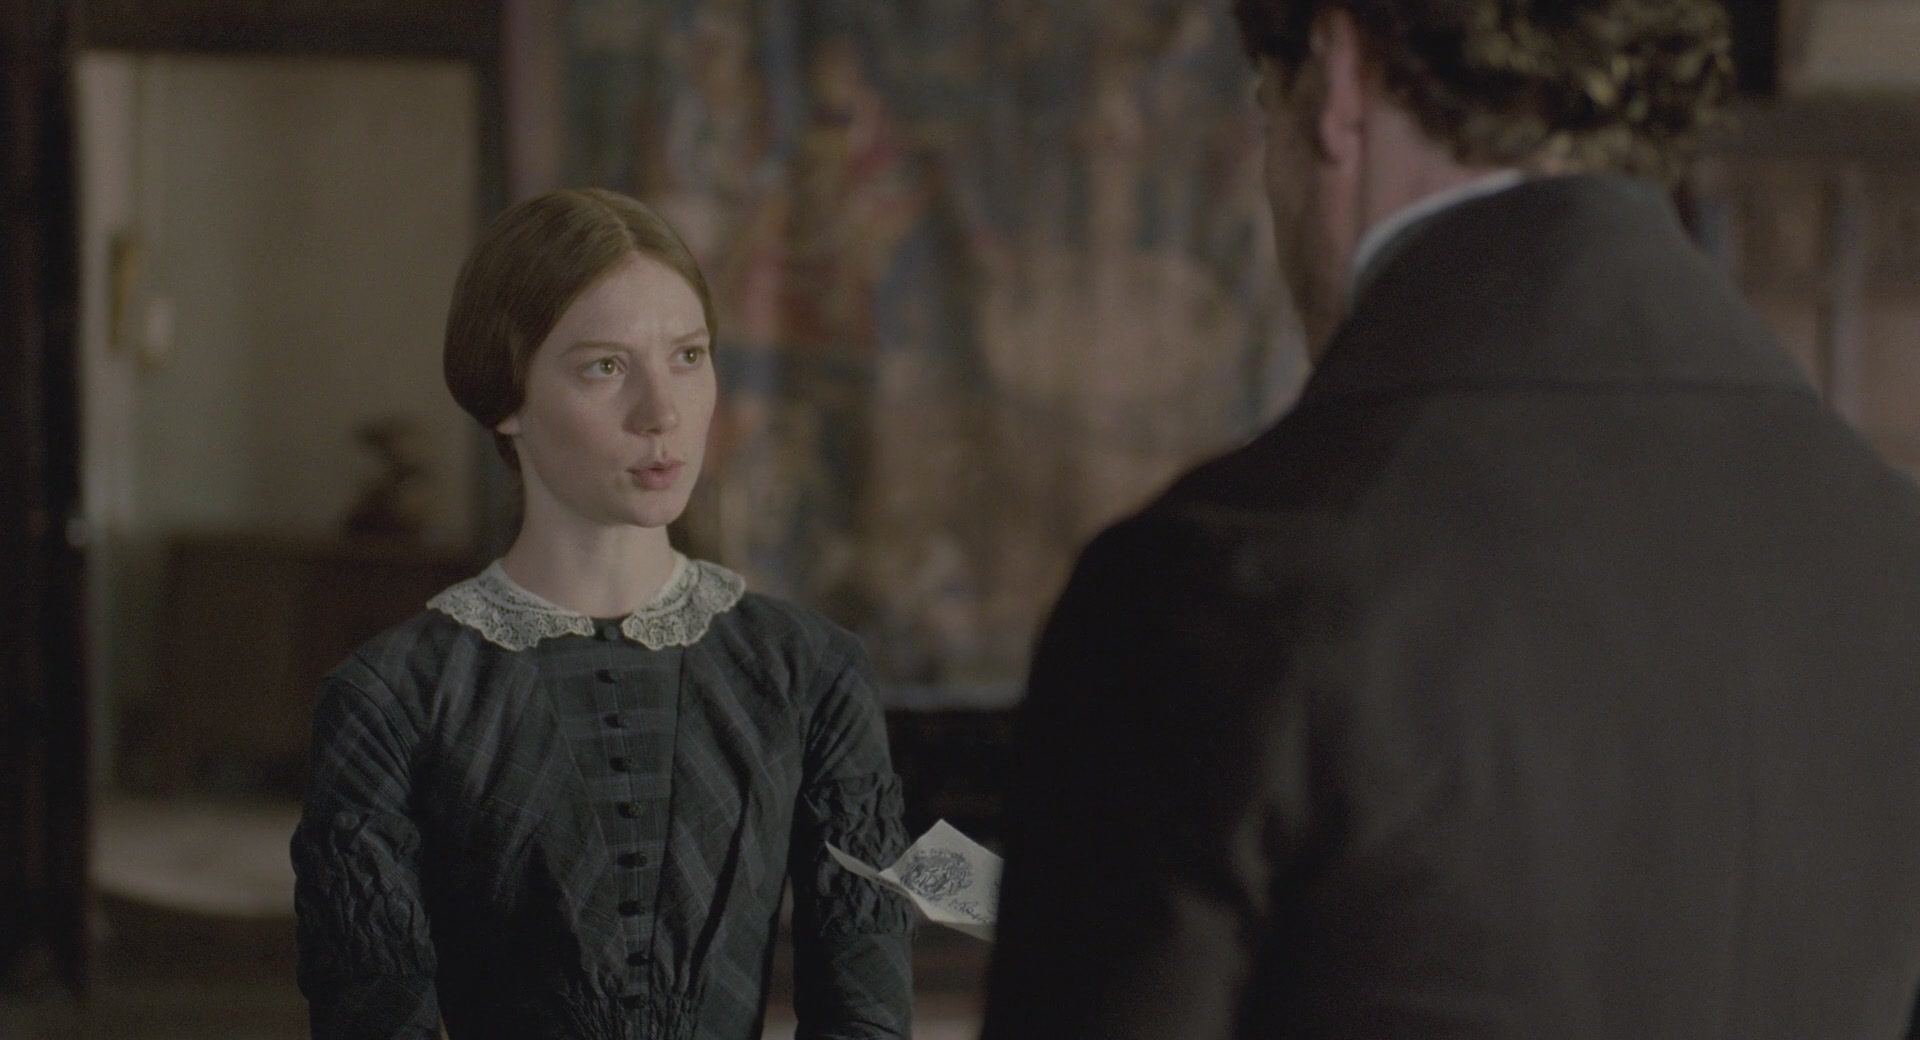 supernatural in jane eyre Echoes in gothic romance: stylistic similarities between jane eyre and rebecca.